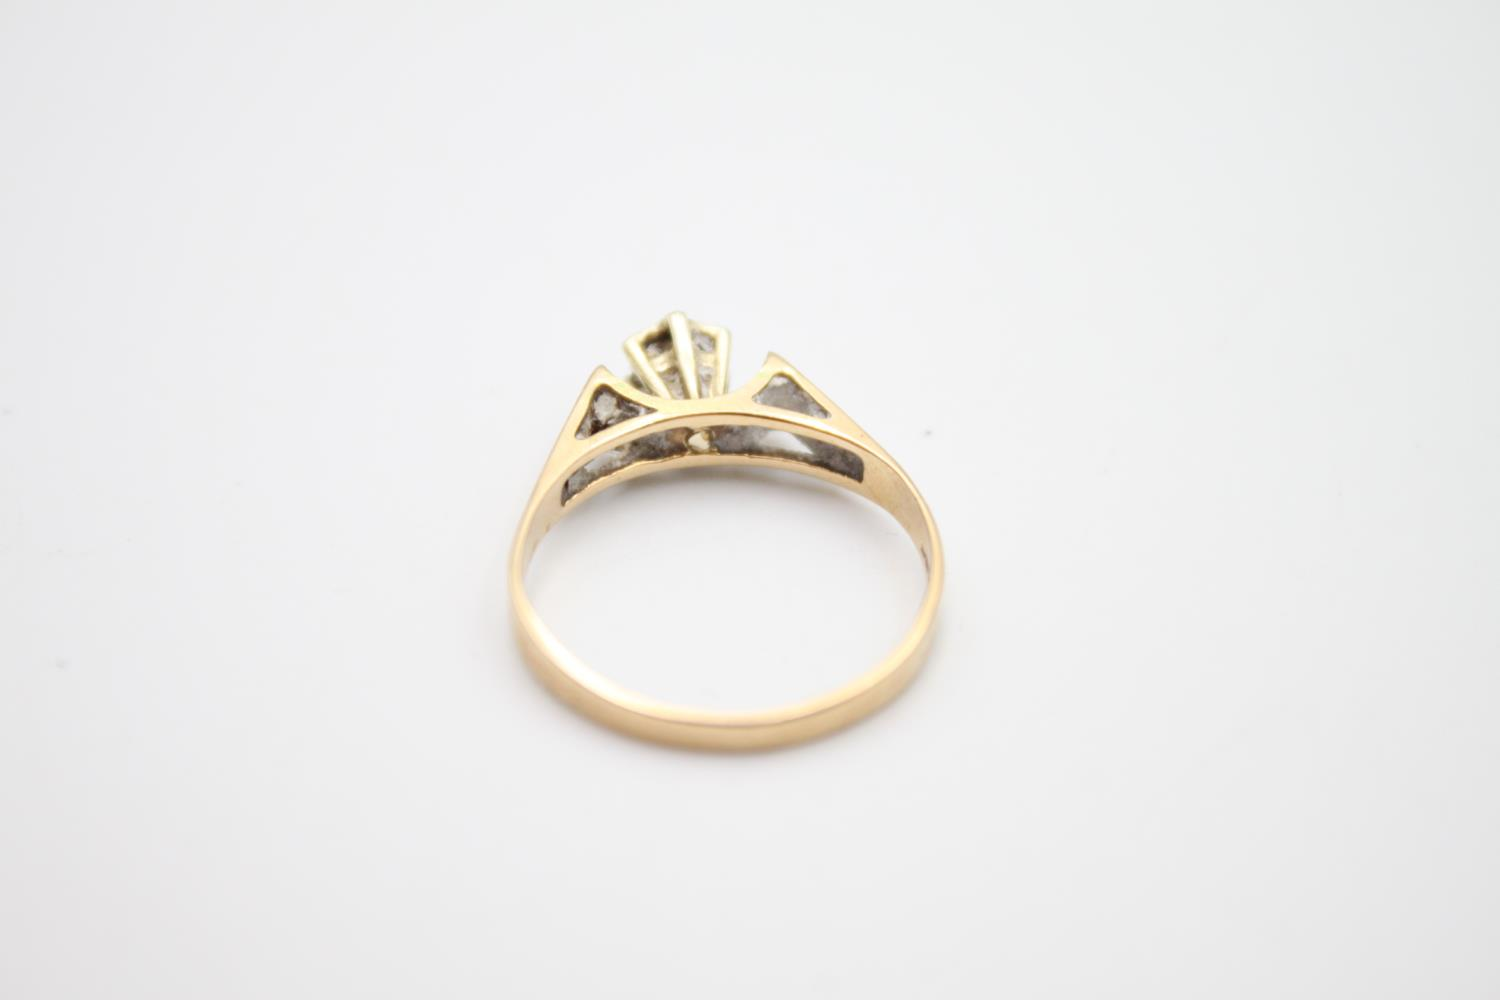 vintage 9ct gold diamond solitaire ring 1.8g Size M - Image 3 of 4